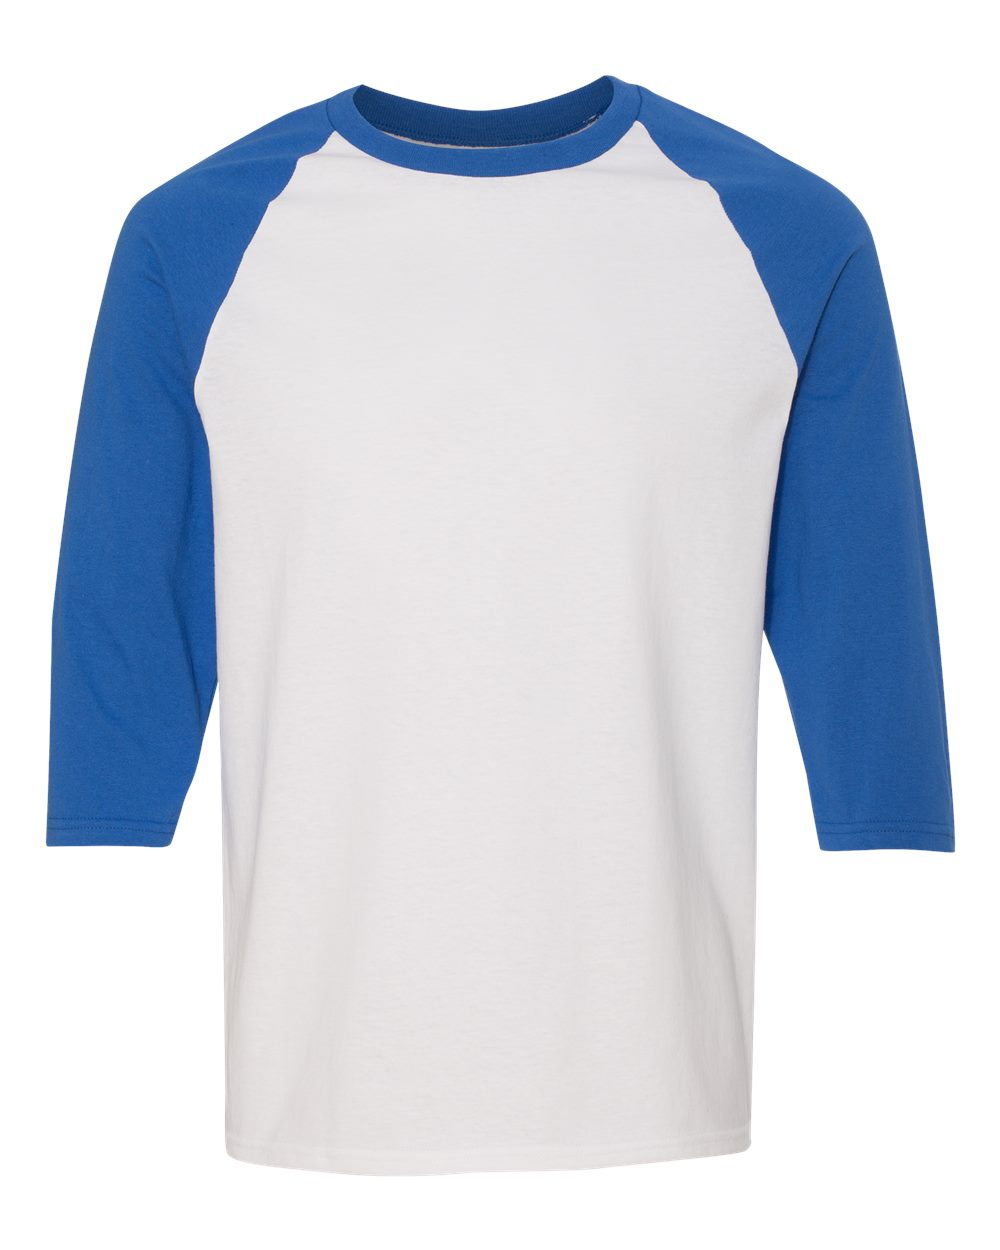 Fabulous Gildan 5700 - Heavy Cotton Three-Quarter Raglan Sleeve T-Shirt HX09